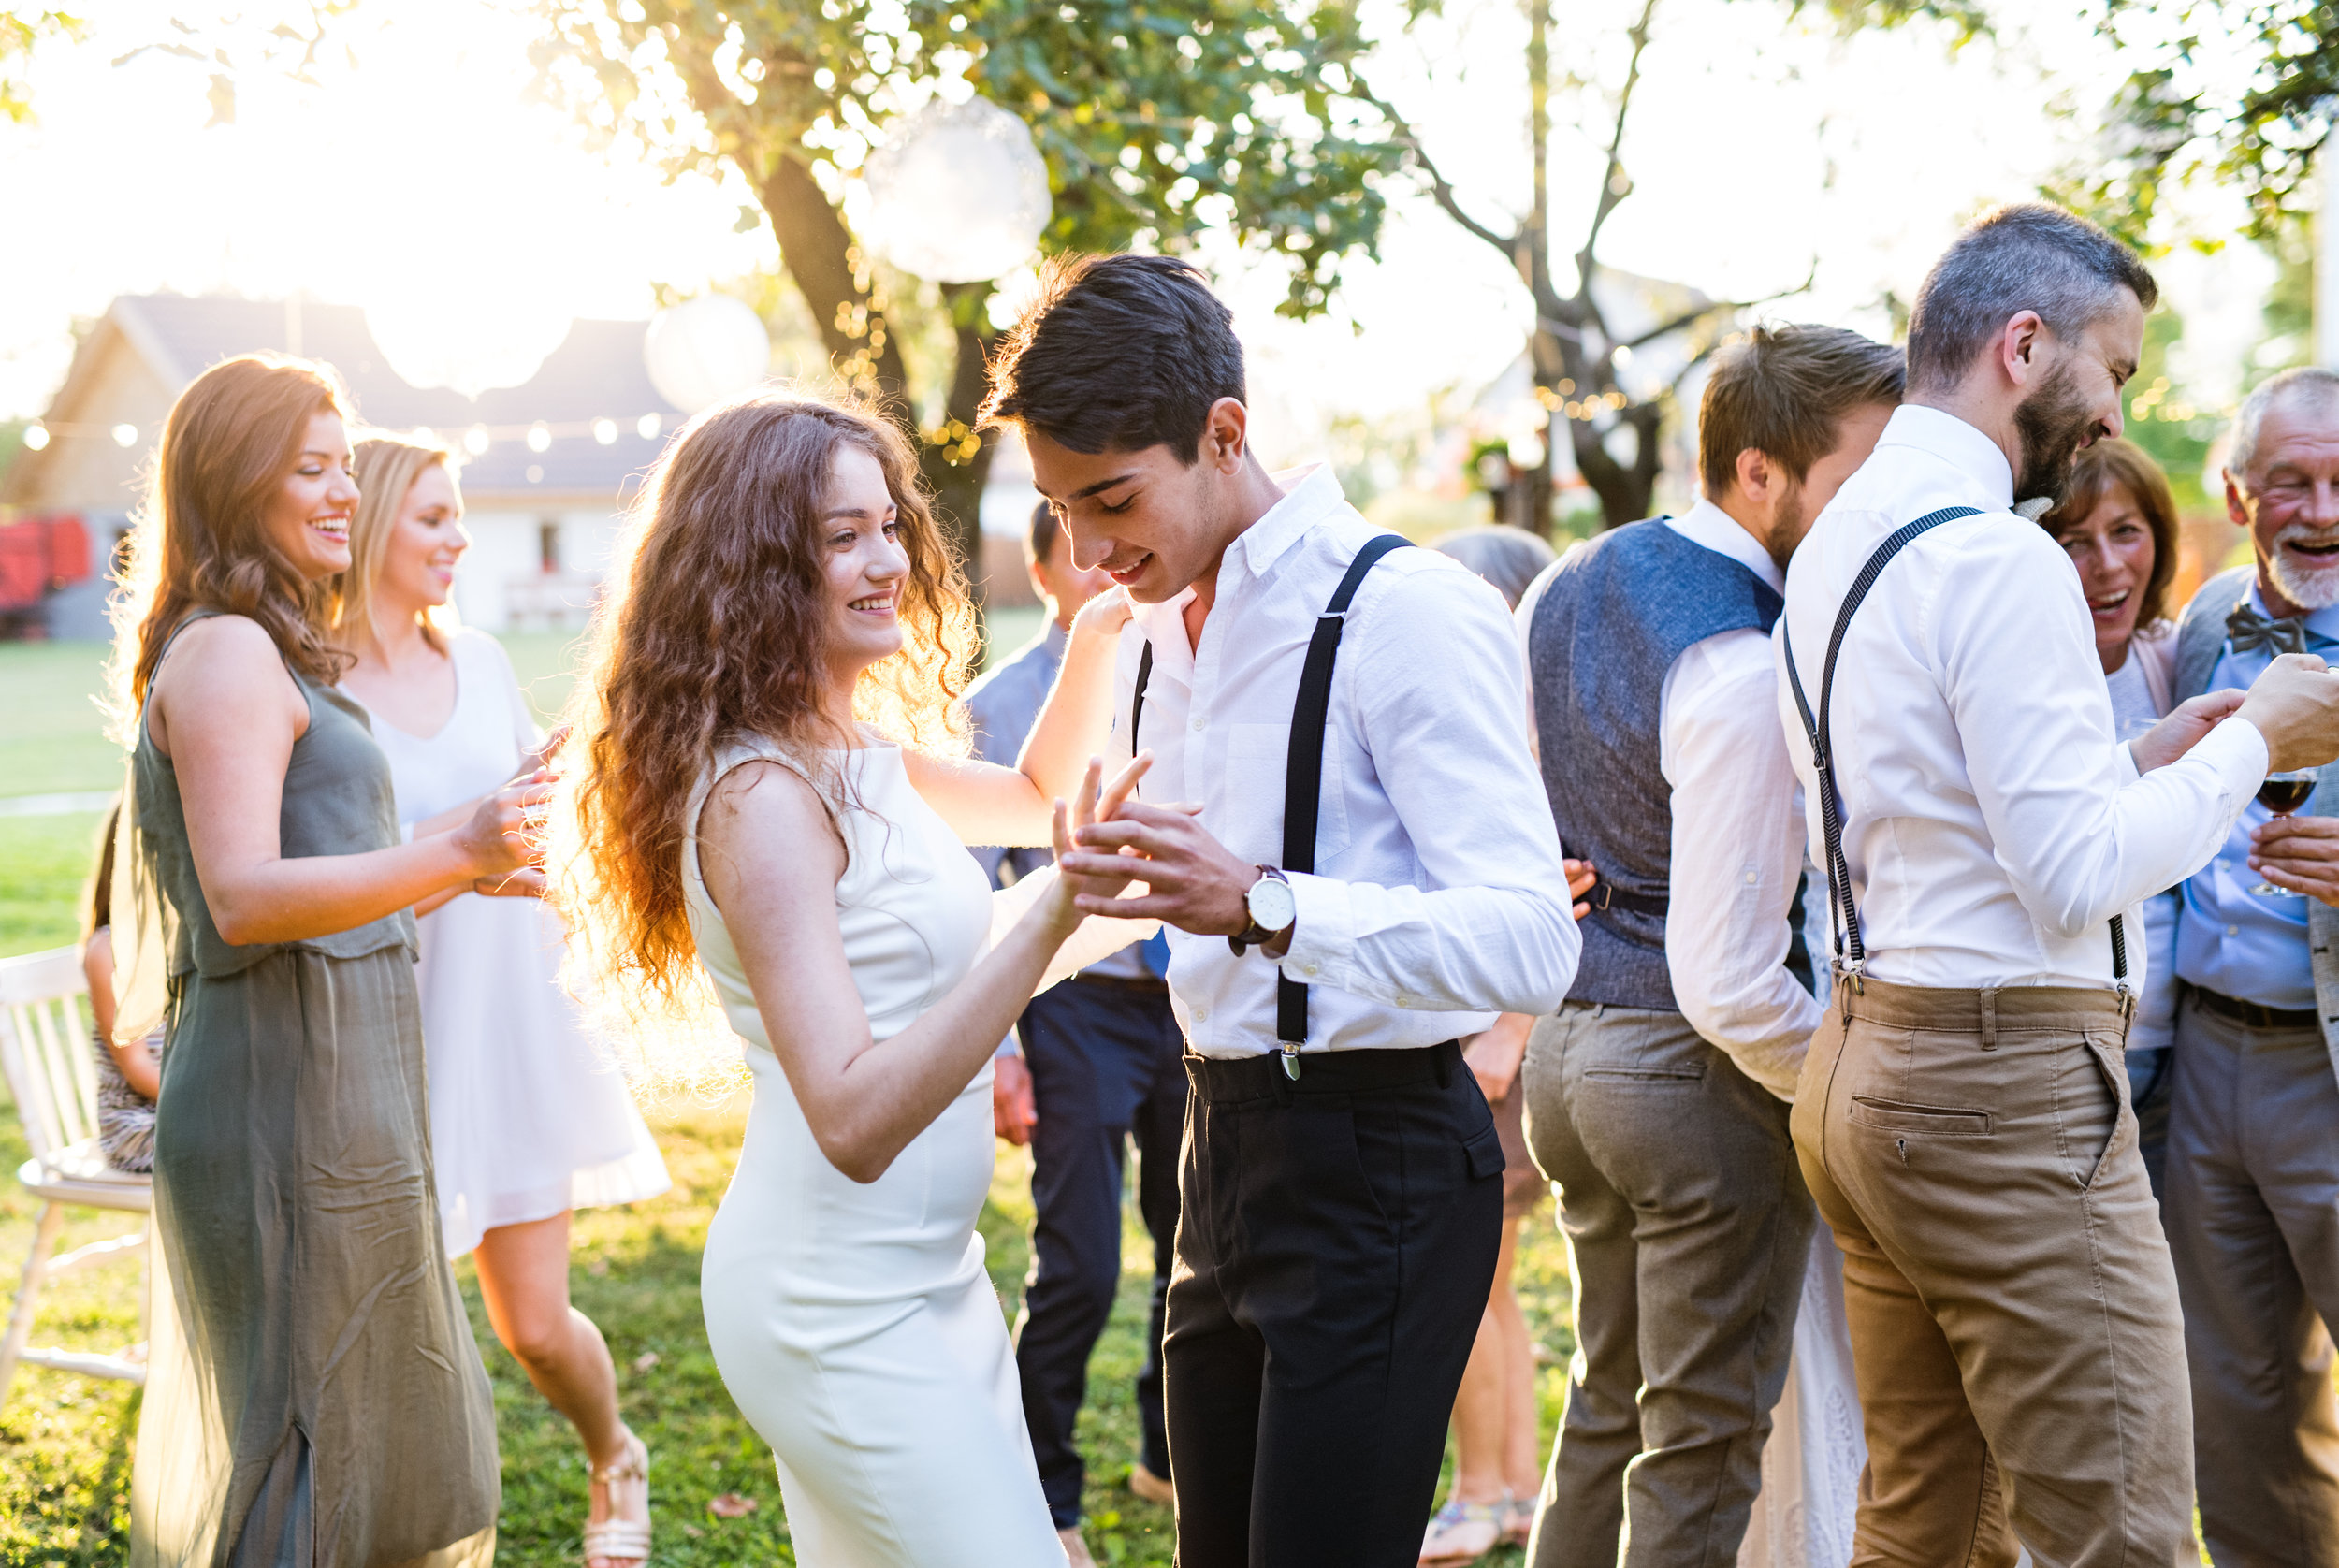 guests-dancing-at-wedding-reception-outside-in-GXEBSNV.jpg